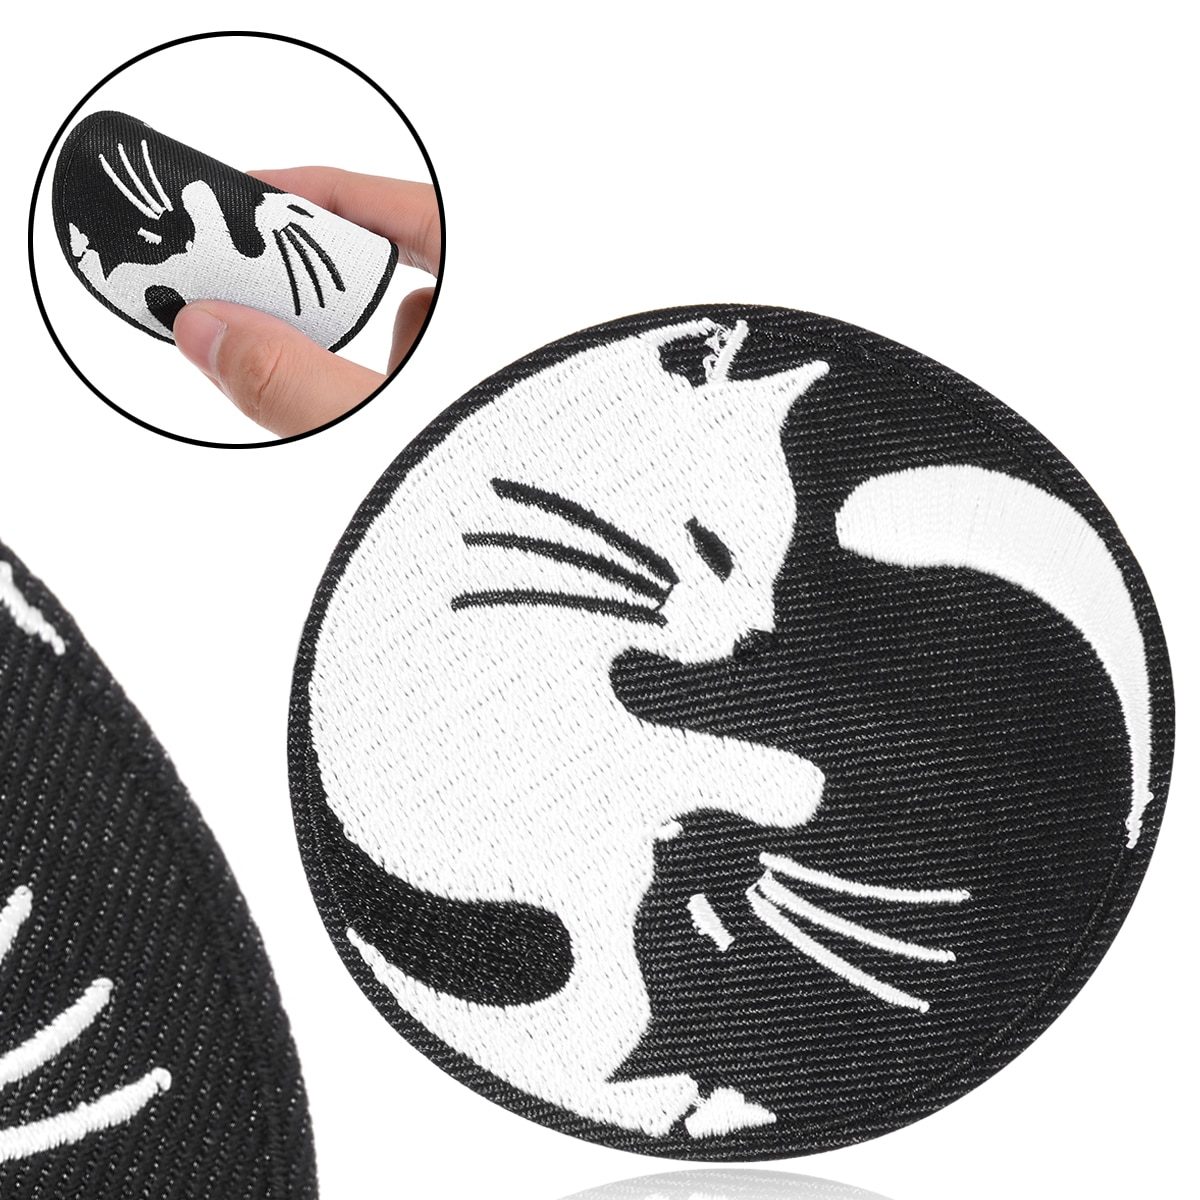 1pc New Animals Yin Yang White Black Cat Applique Sew Iron on Patch Badge Hat Jeans Fabric Cap T-shirt Cool Decoration